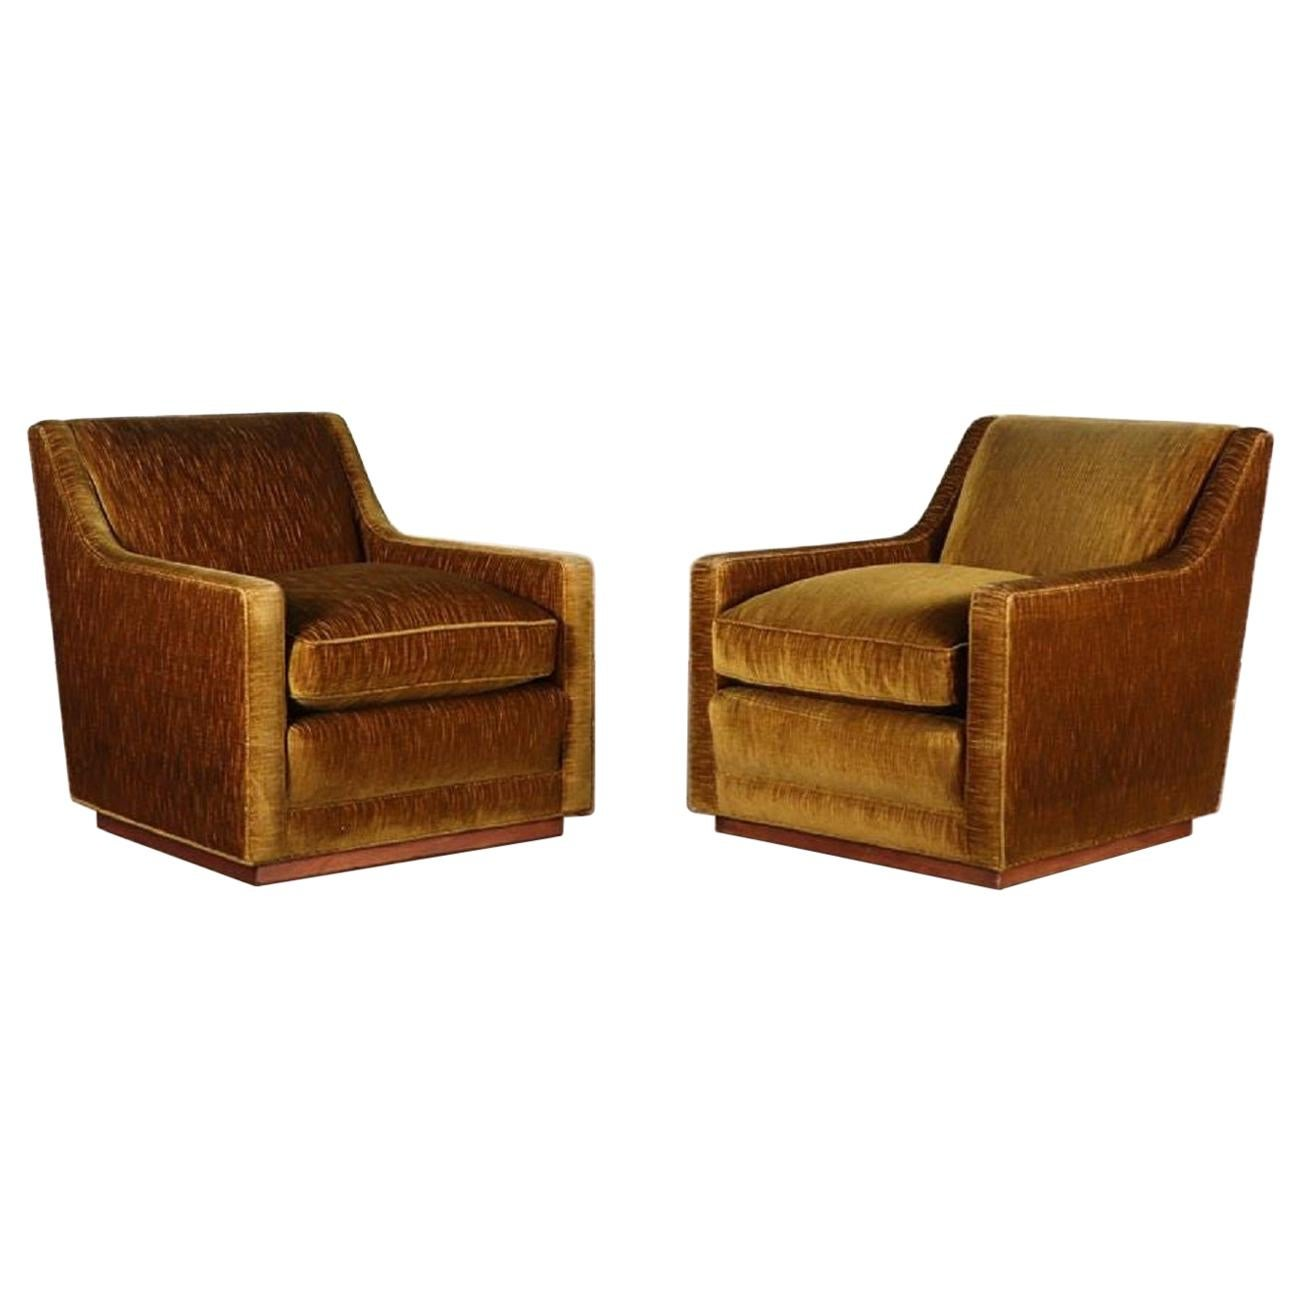 Pair of 1950s Mohair Lounge Chairs